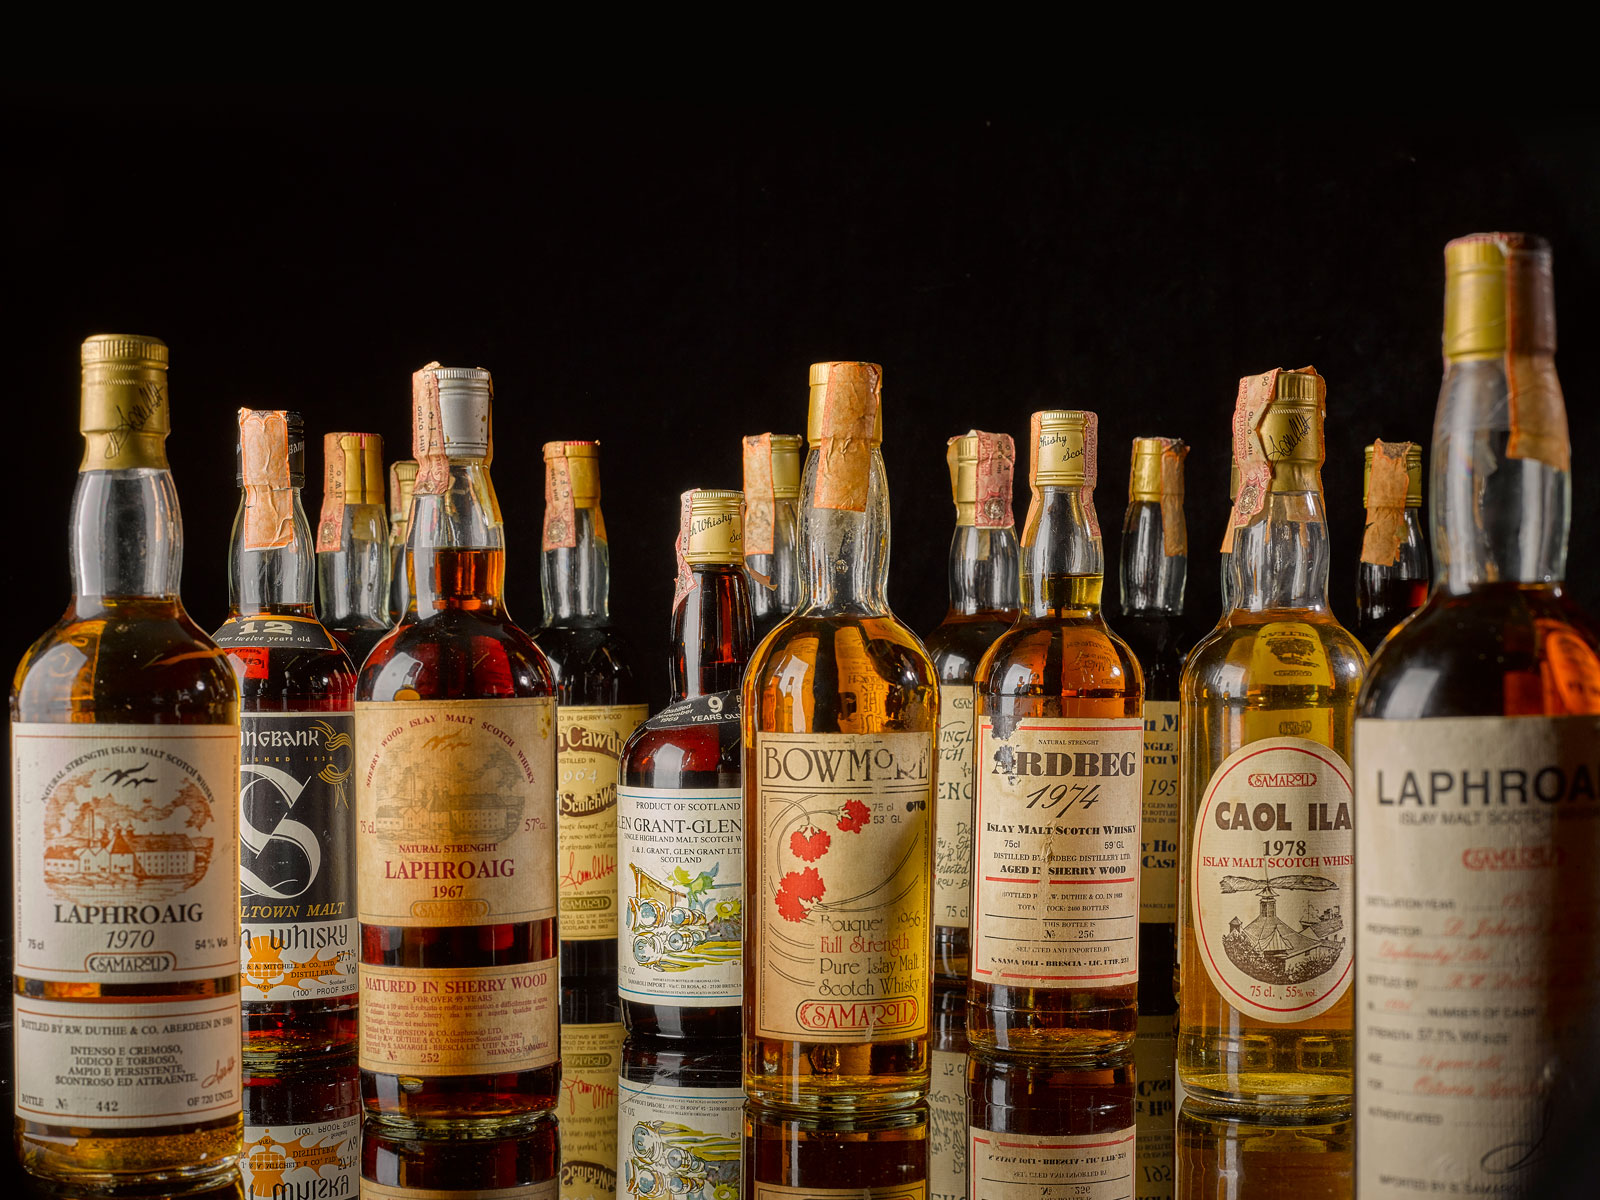 Sotheby's to Sell the 'Most Valuable Collection of Whisky' Ever Auctioned